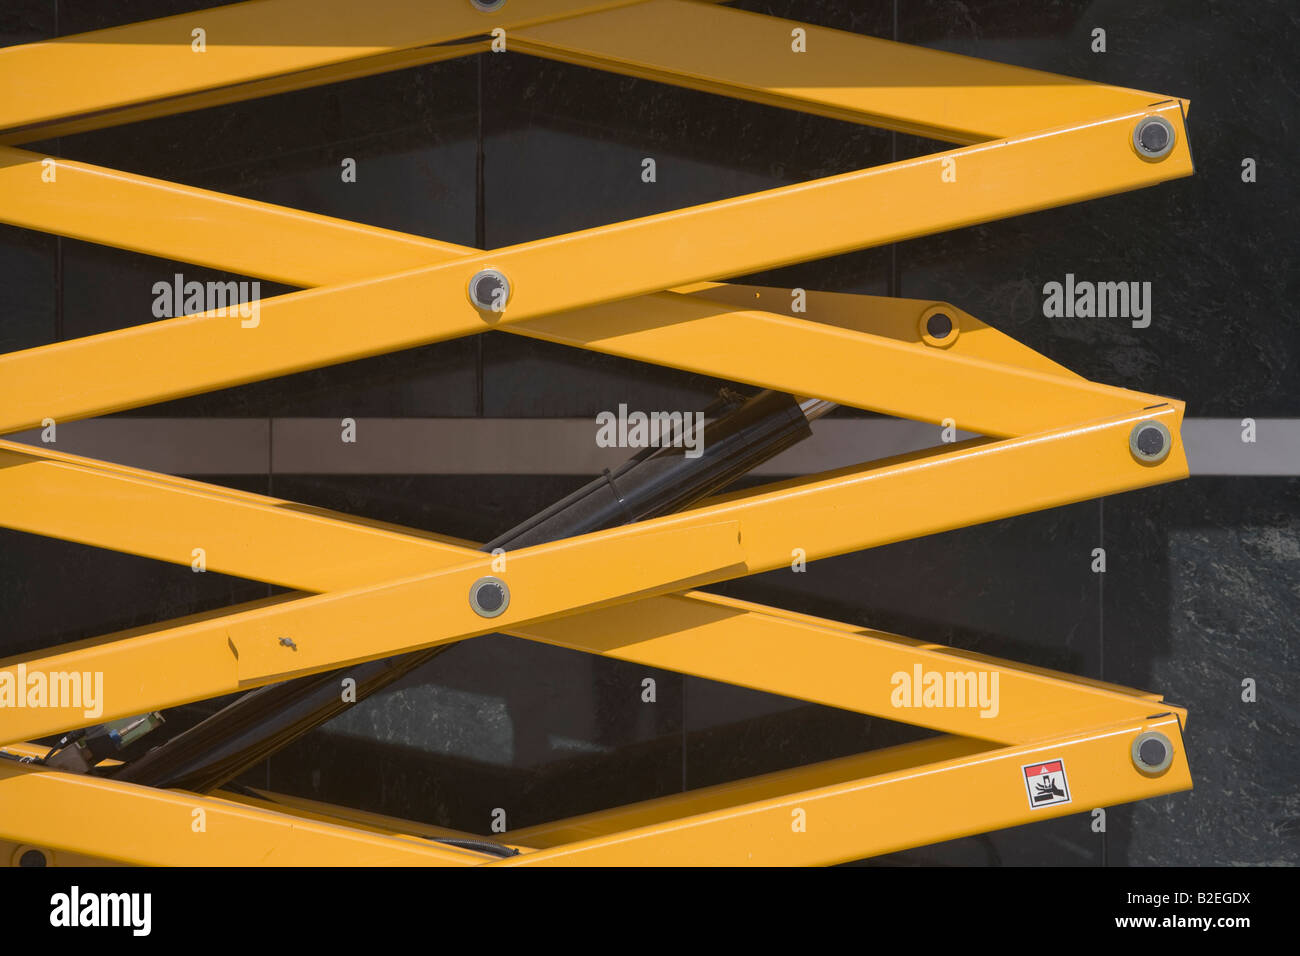 Detail of expandable column of scissor lift platform - Stock Image